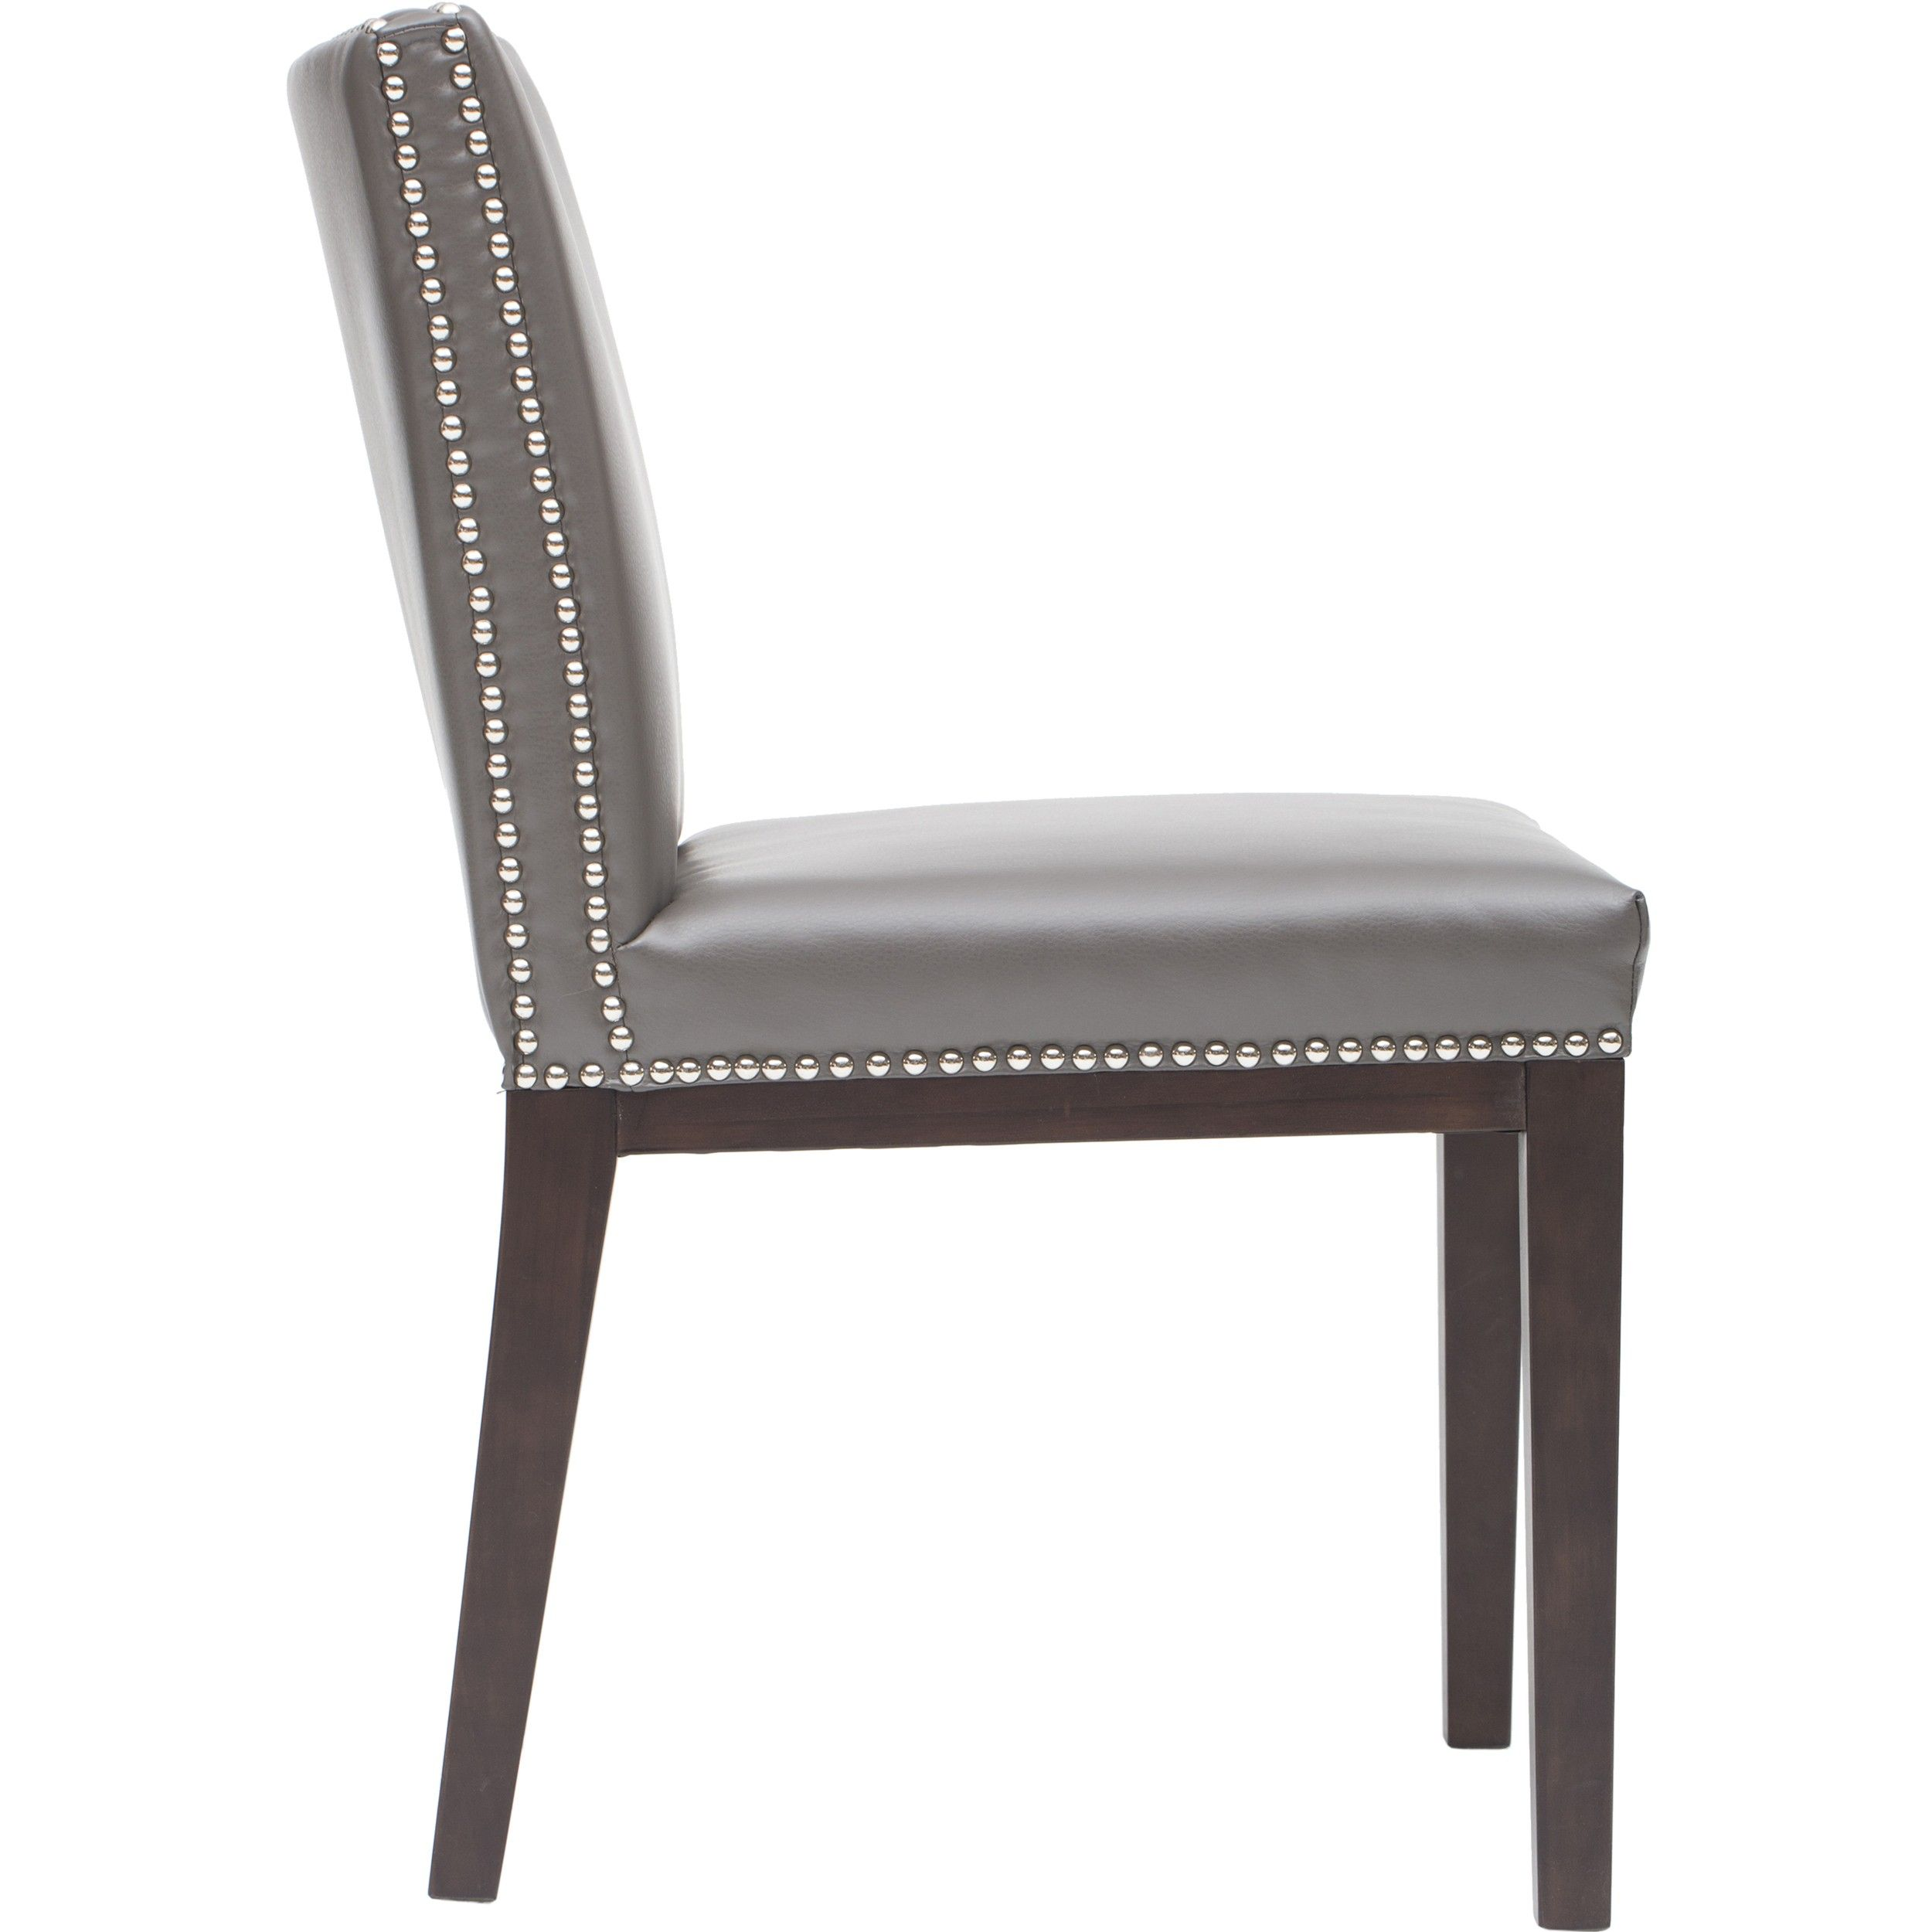 gray and white leather dining chair   Google Search  No clue where this is  from. gray and white leather dining chair   Google Search  No clue where